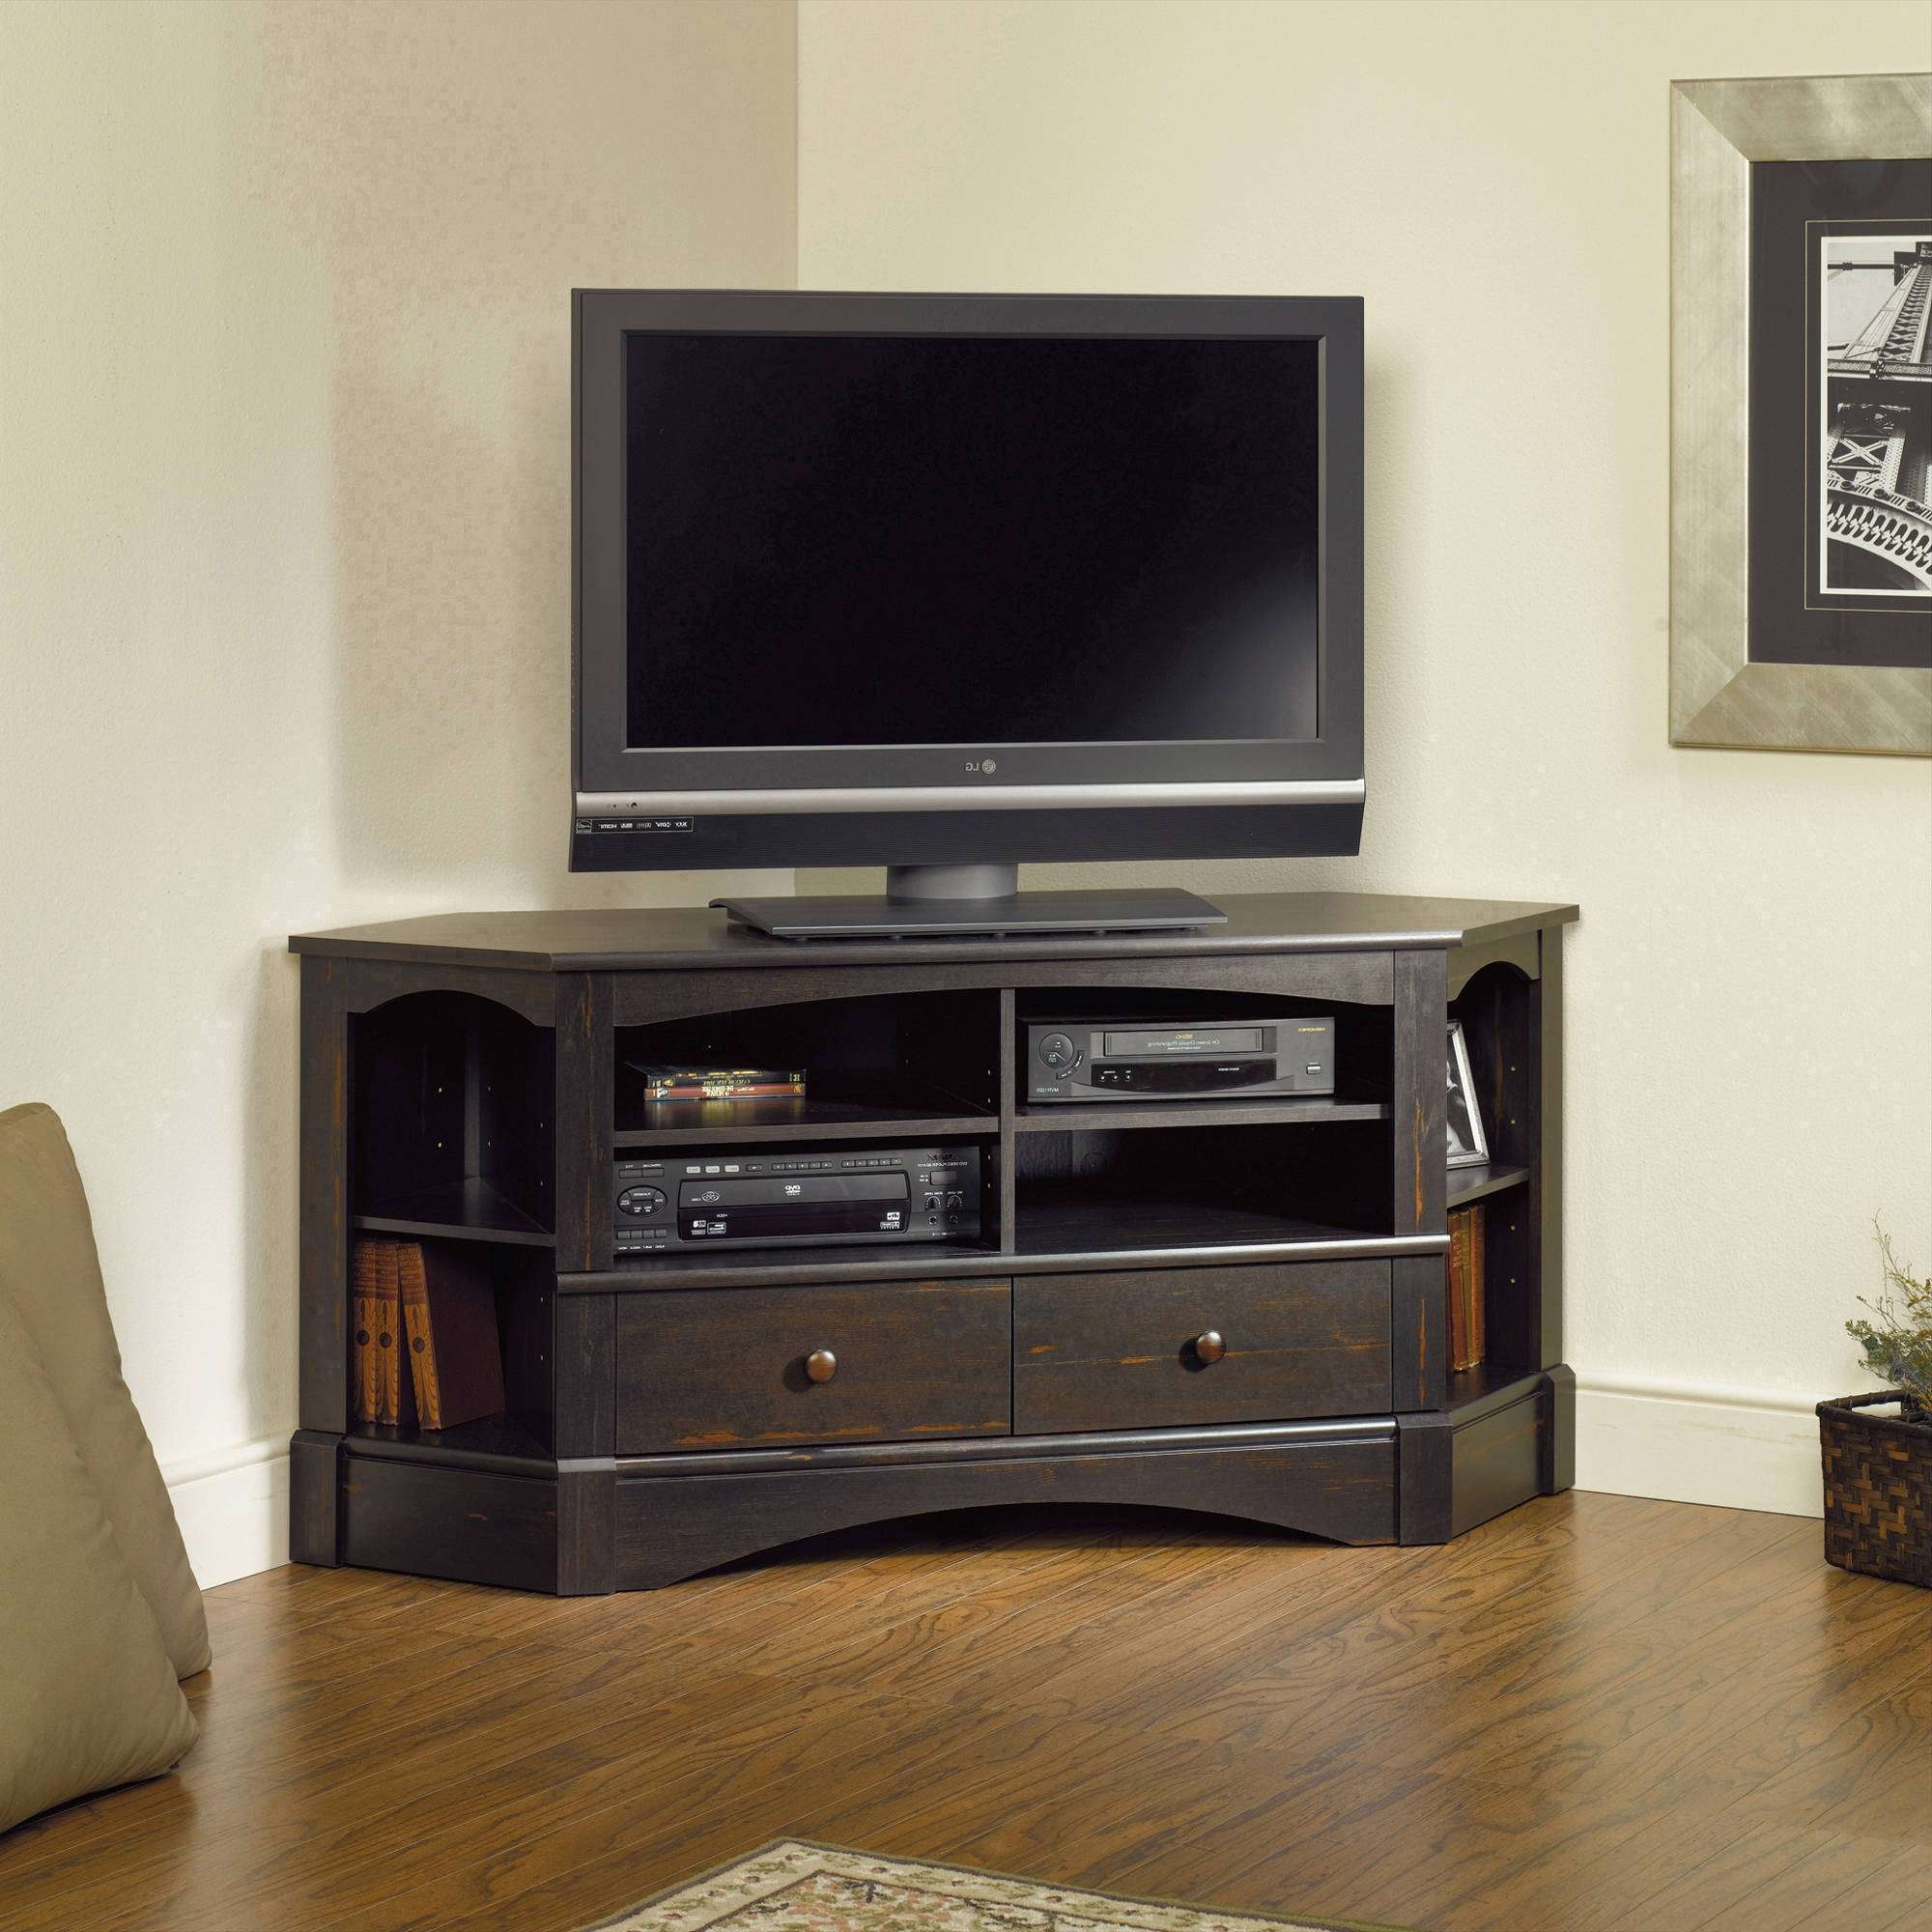 Tv Stand : 32 Unusual 55 Inch Corner Tv Stand With Mount Images Intended For Dark Brown Corner Tv Stands (View 10 of 15)